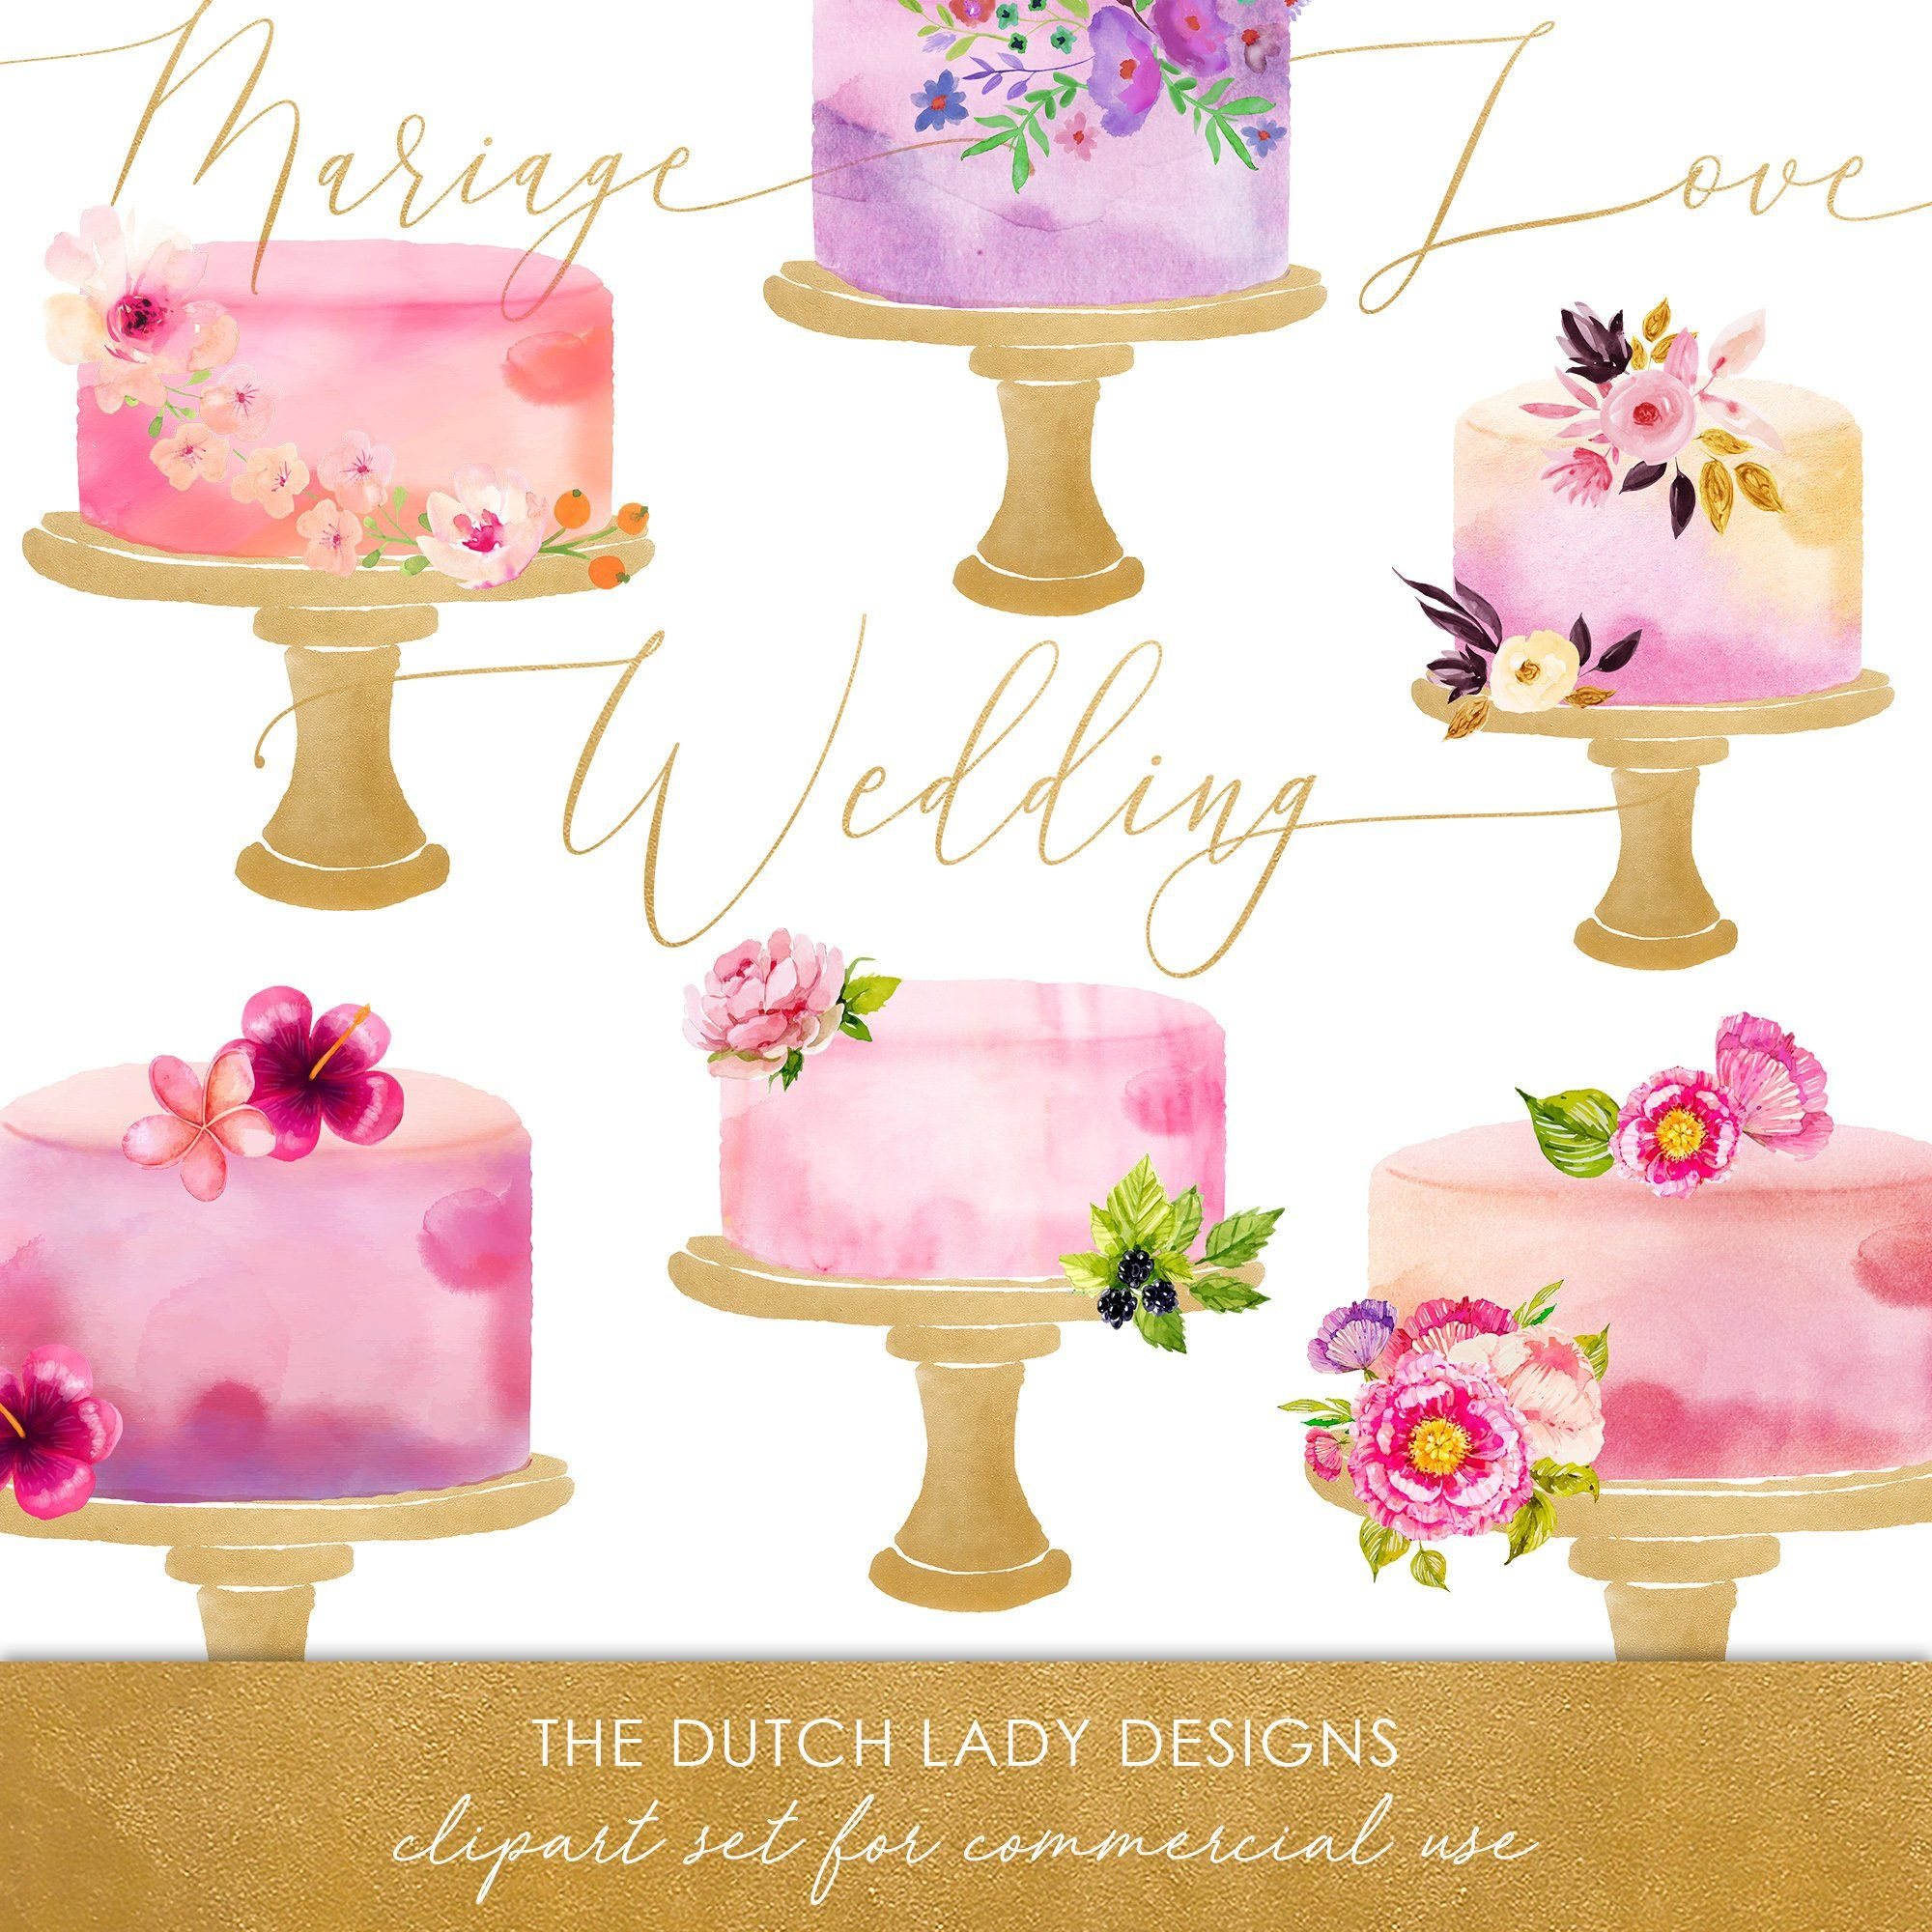 Watercolor cake clipart png svg freeuse download Watercolor Wedding Cake Clipart - In Pink, Purple & Gold ... svg freeuse download